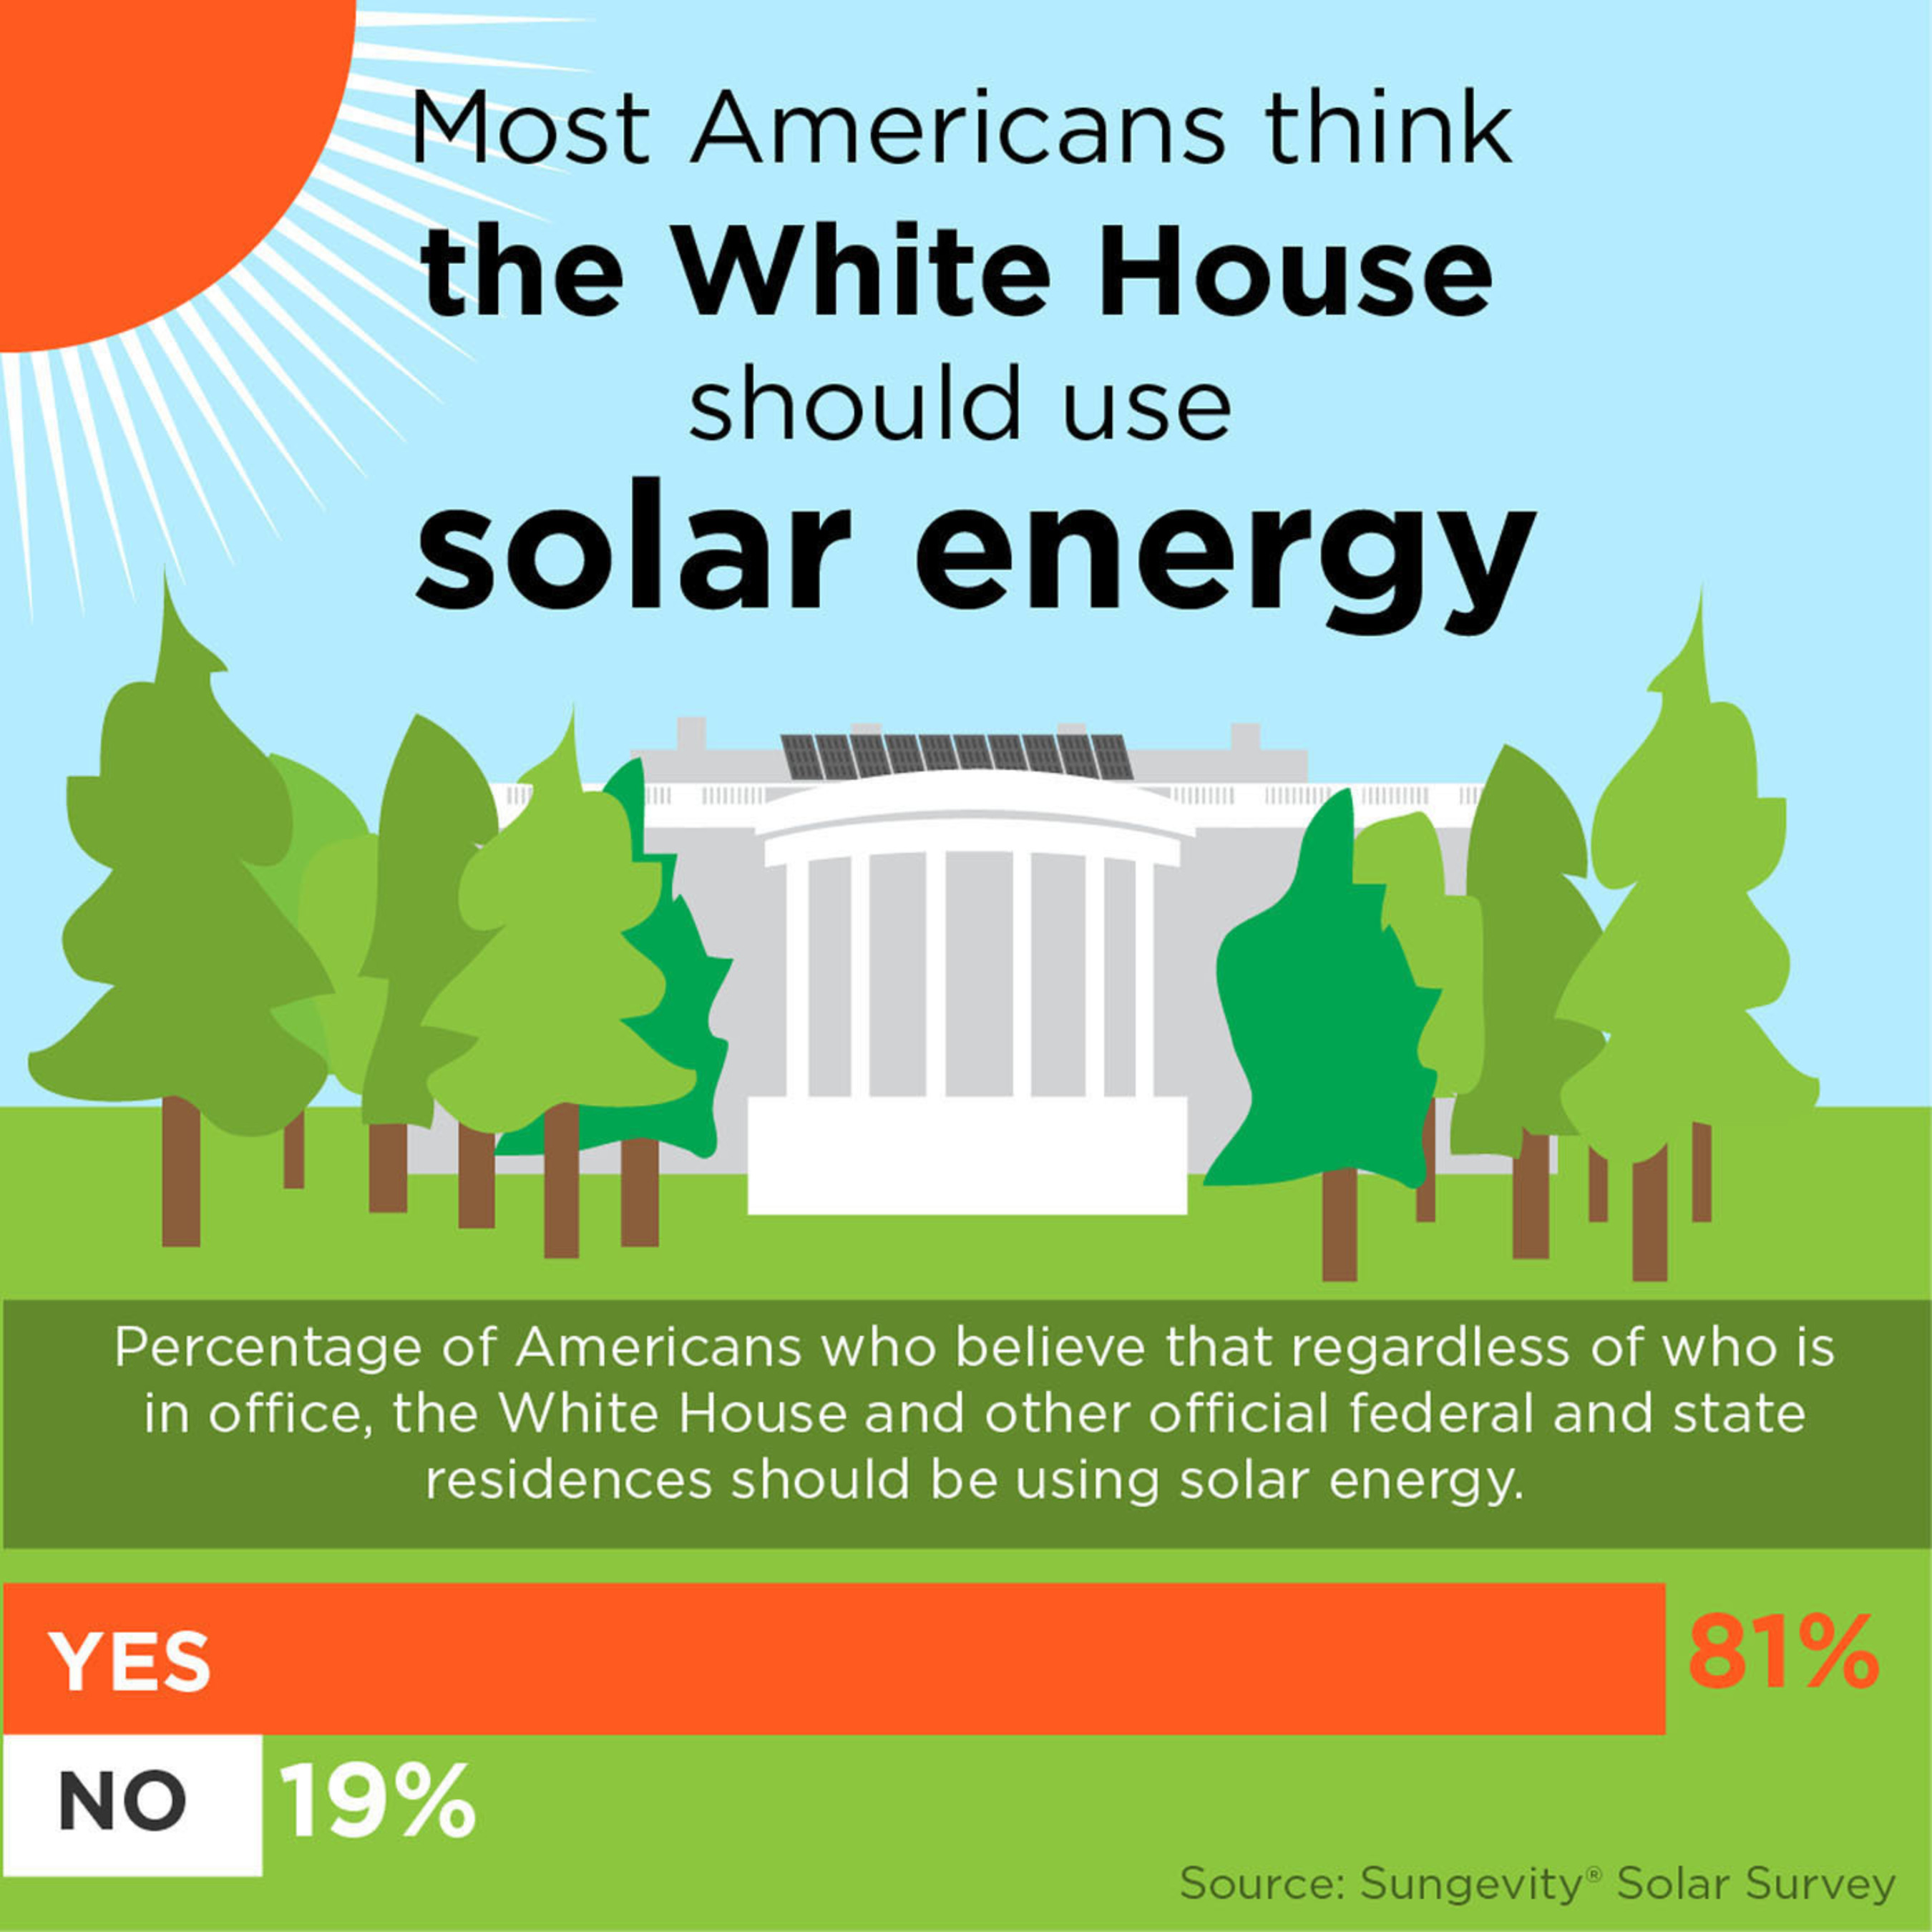 New  election cycle survey - nine in ten Americans think solar should be a bigger part of the country's energy supply and 81% believe that regardless of who is in office, the White House and other official federal and state residences should use solar energy.  (PRNewsFoto/Sungevity)